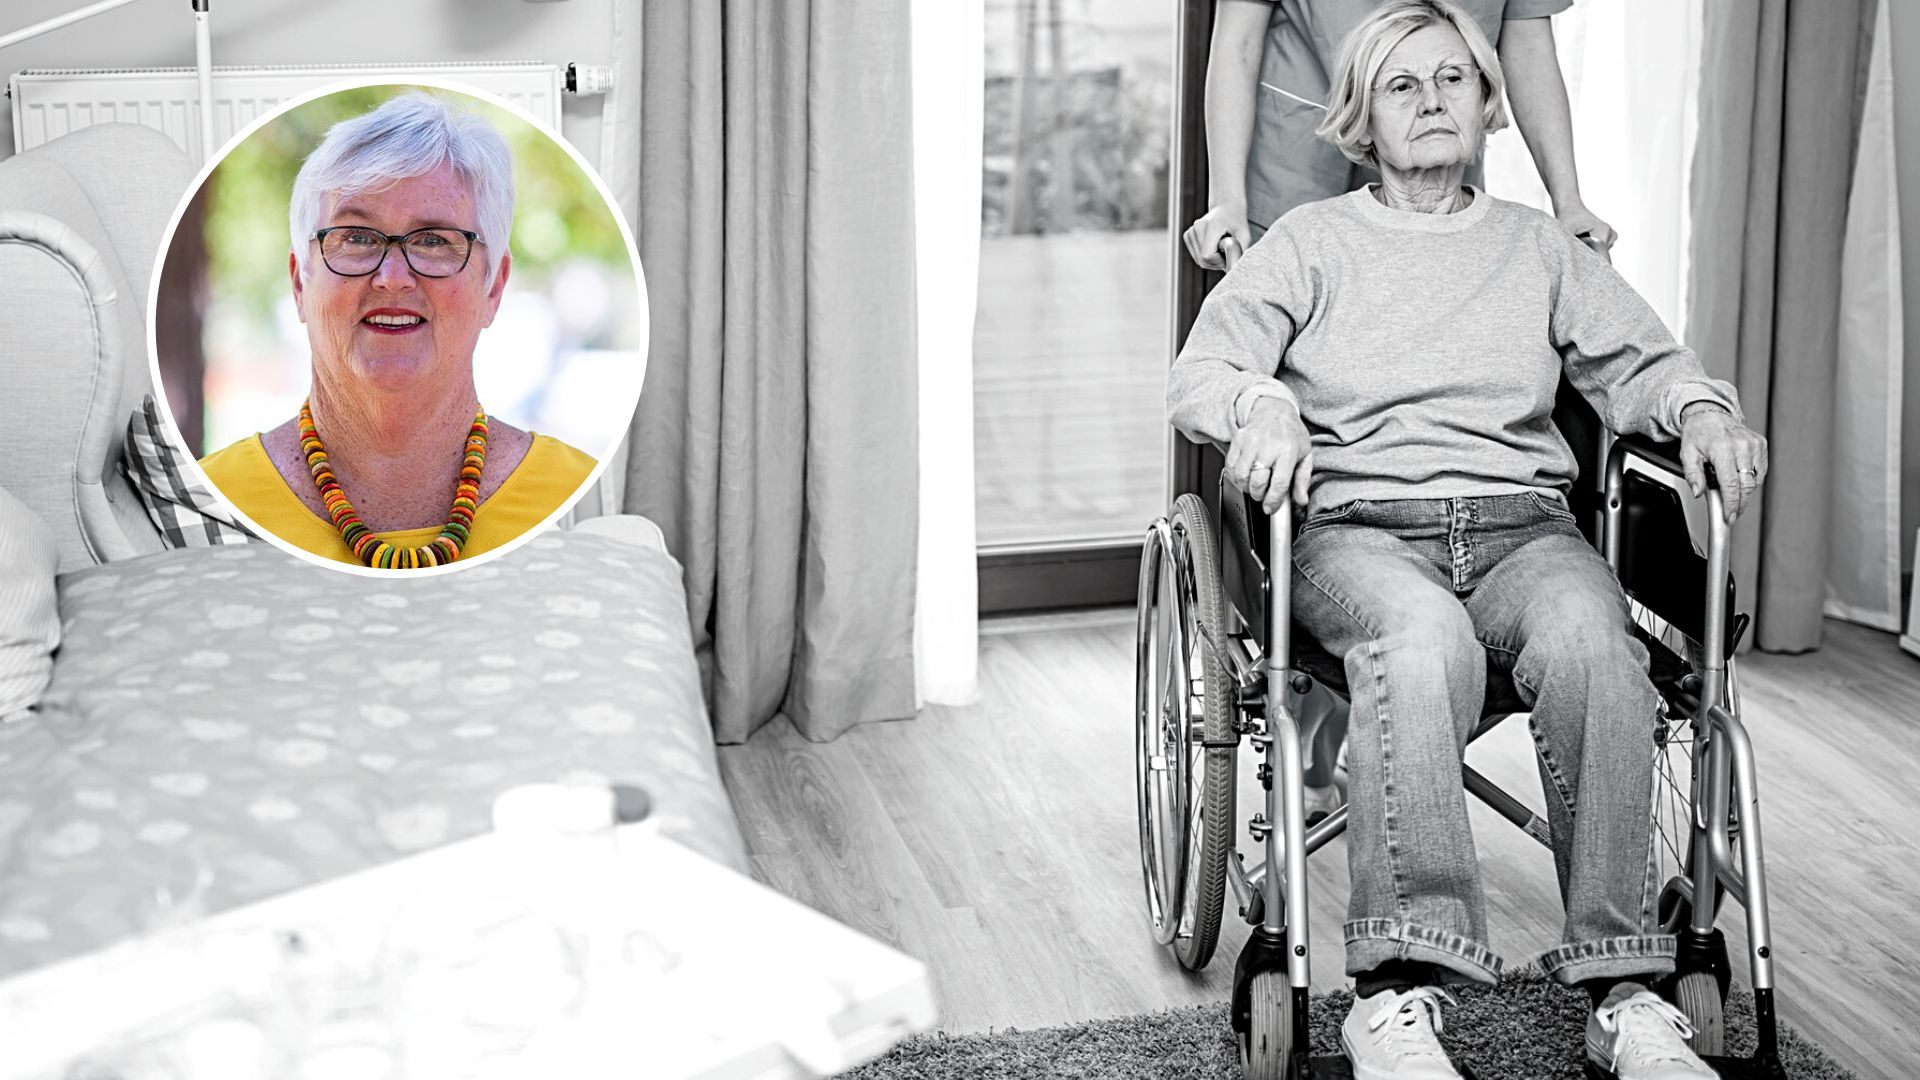 Aged care Budget cash splash, but where's the transparency?